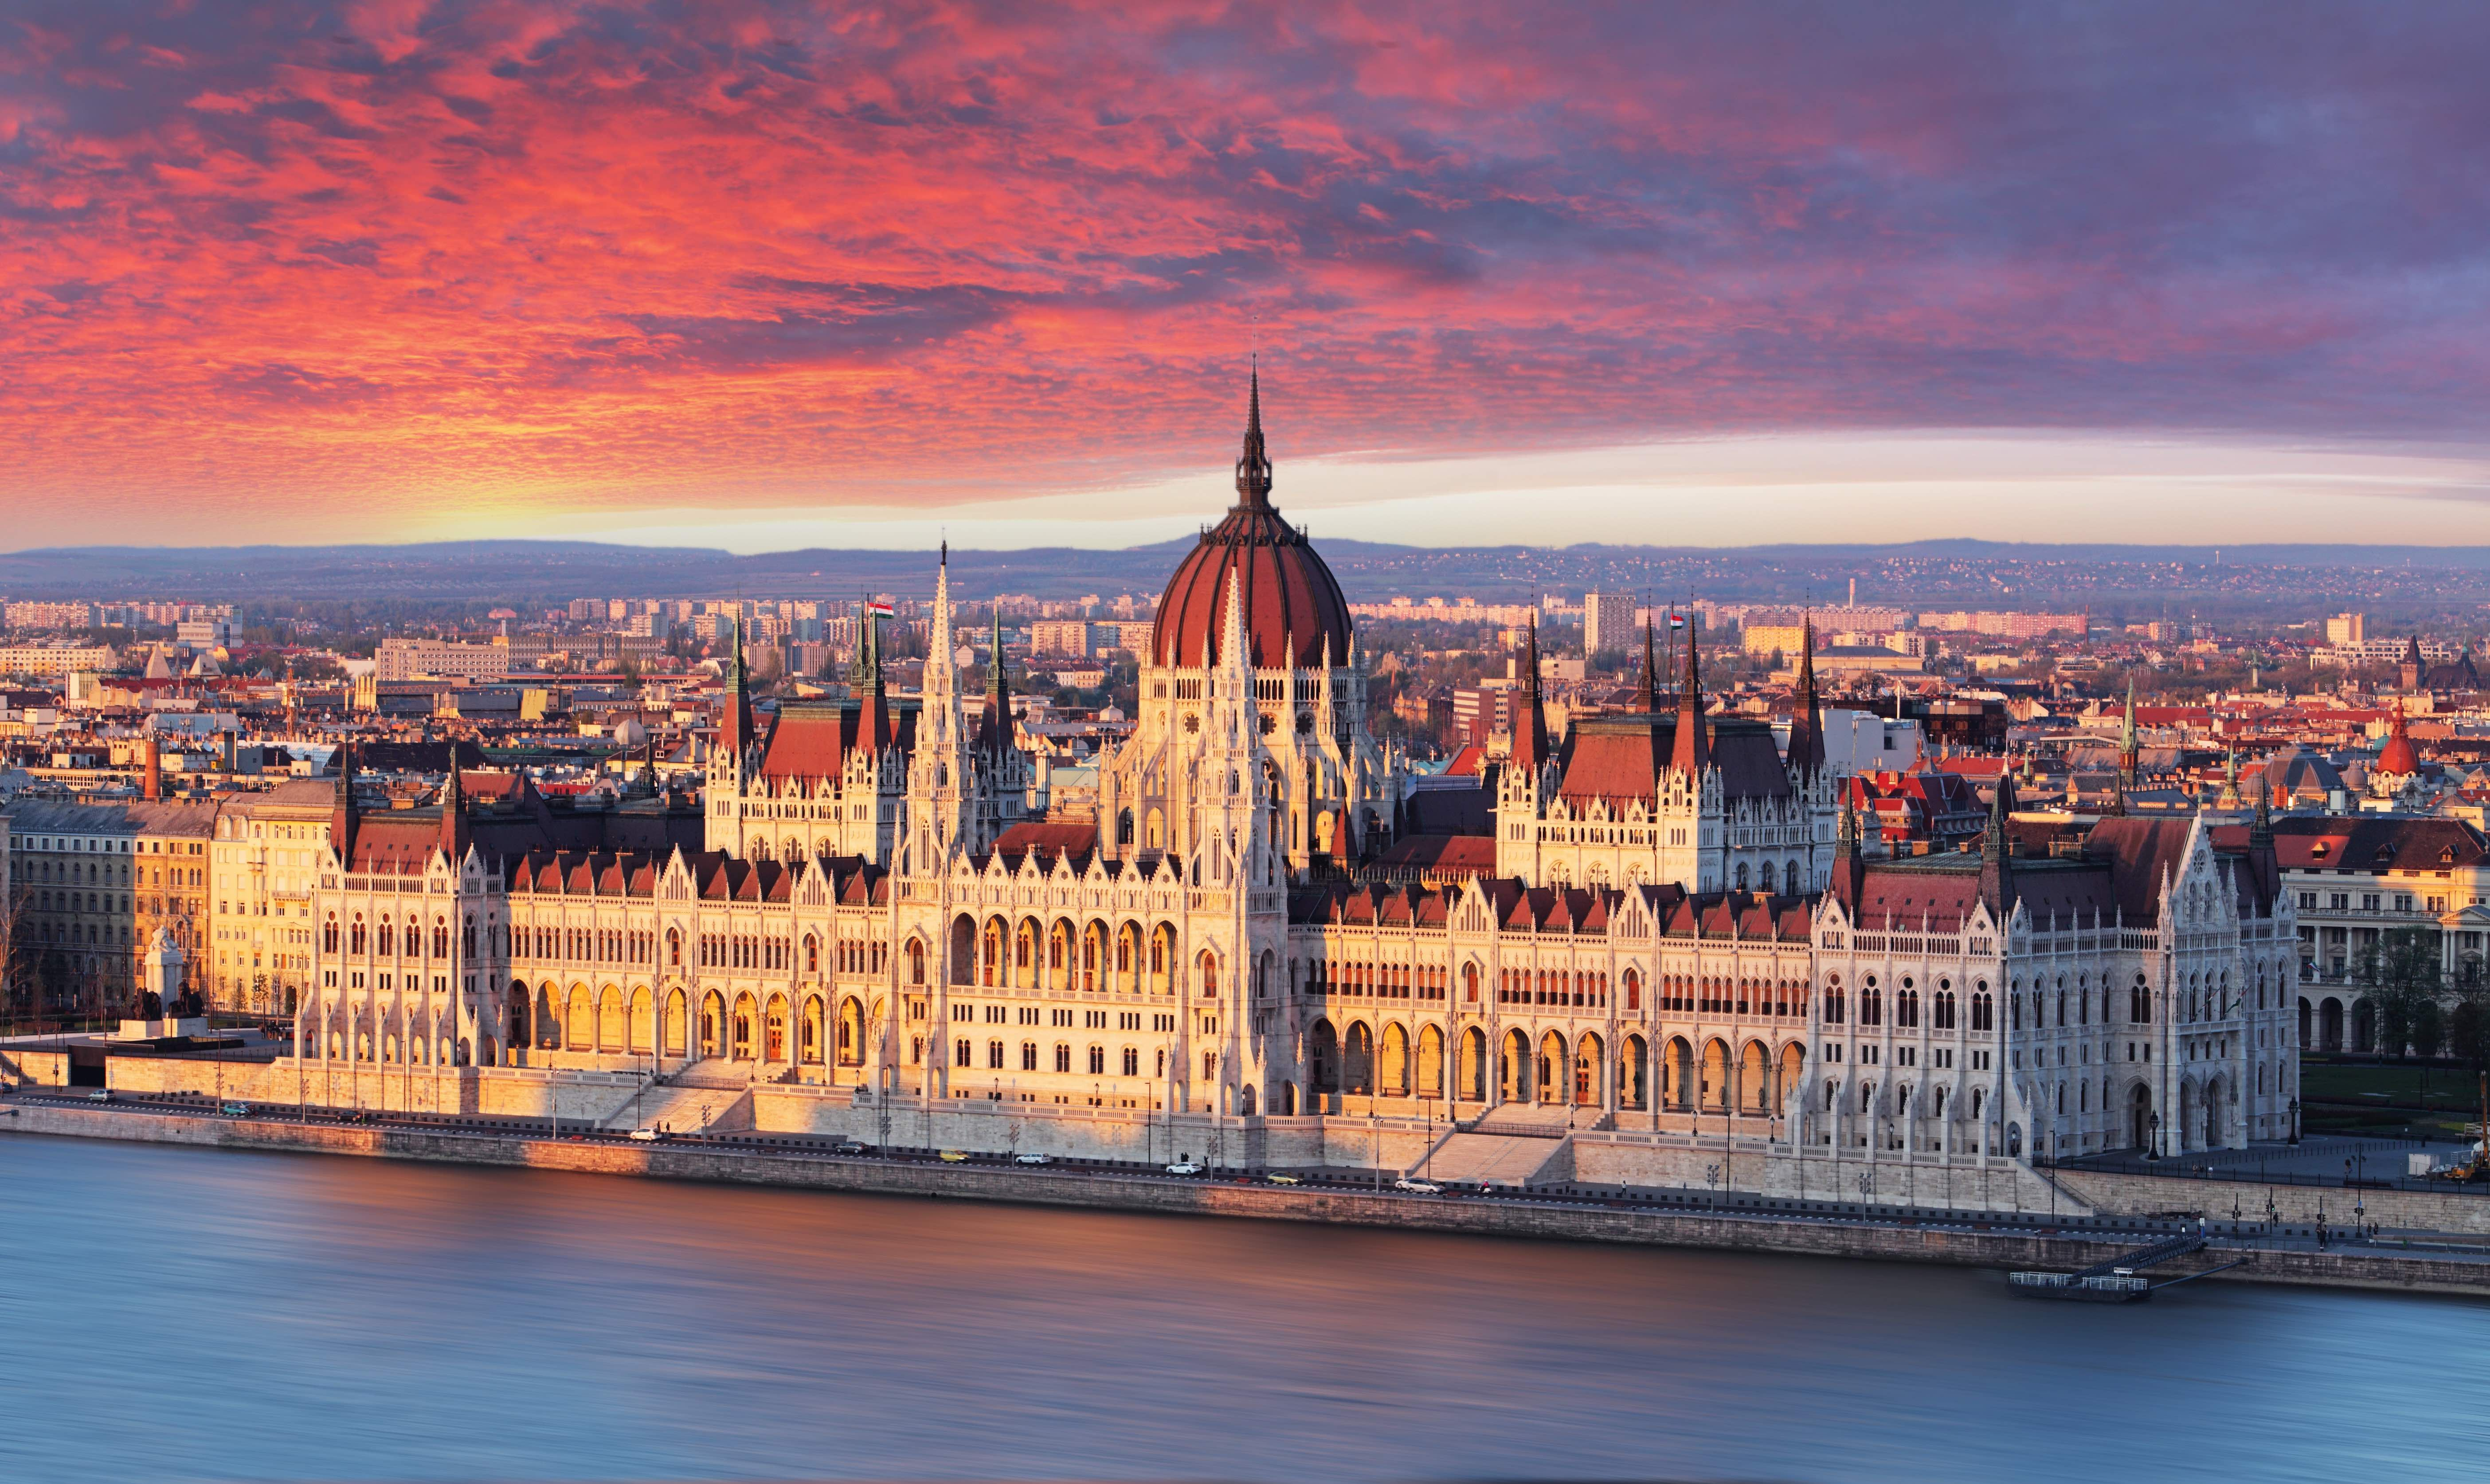 the hungarian parliament building is giving us the travel